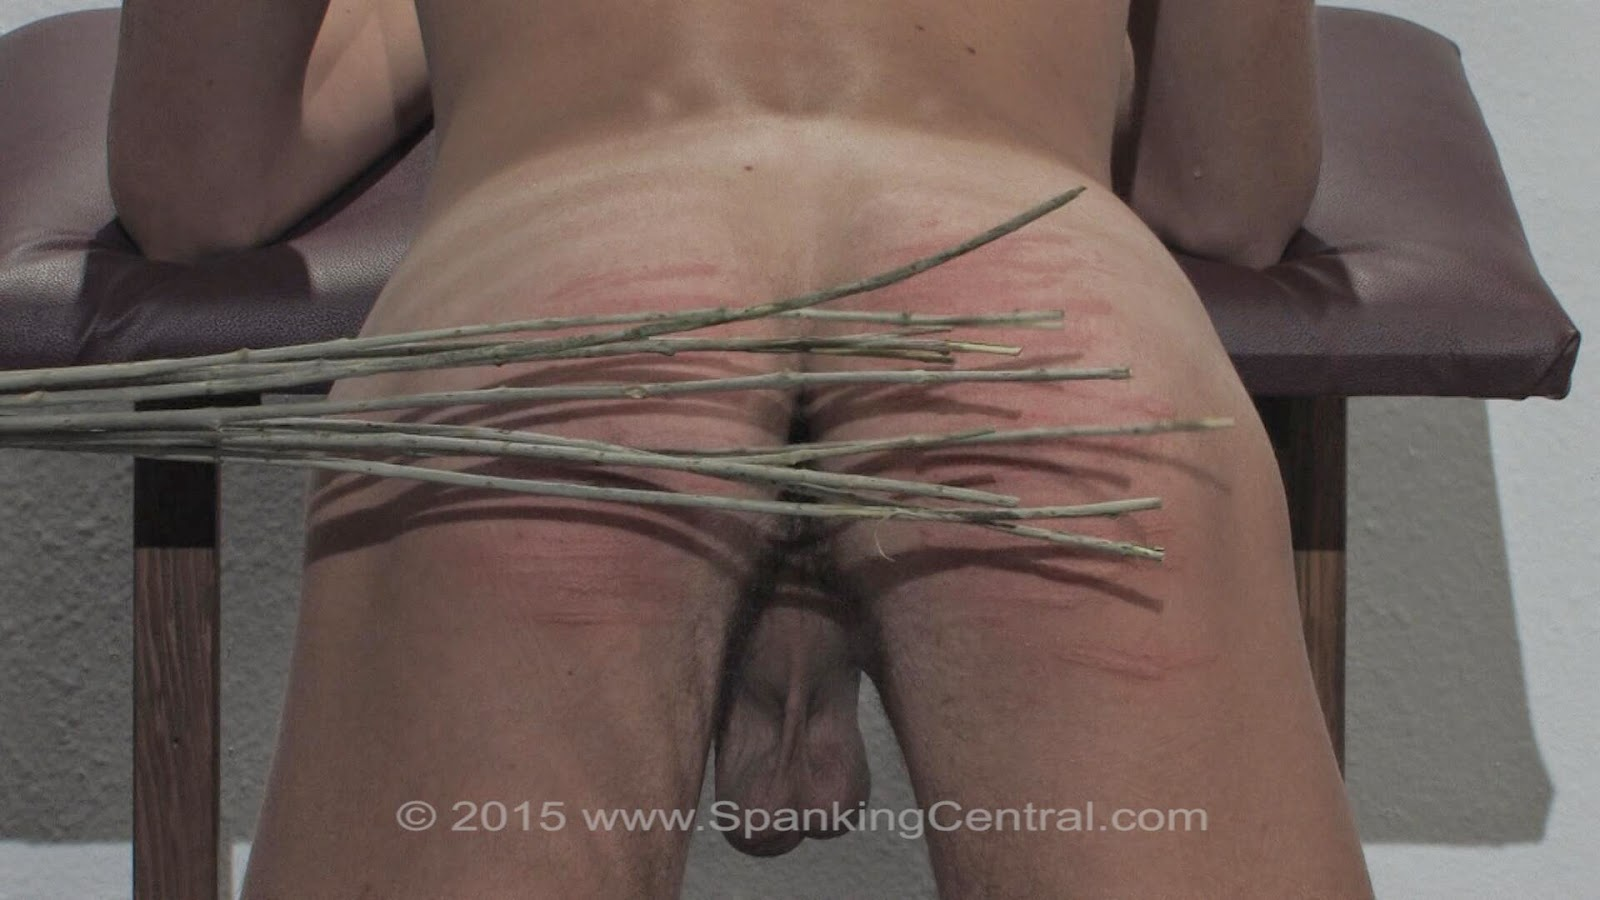 Vermont spanking personals Spanking Personals - spanking in VT